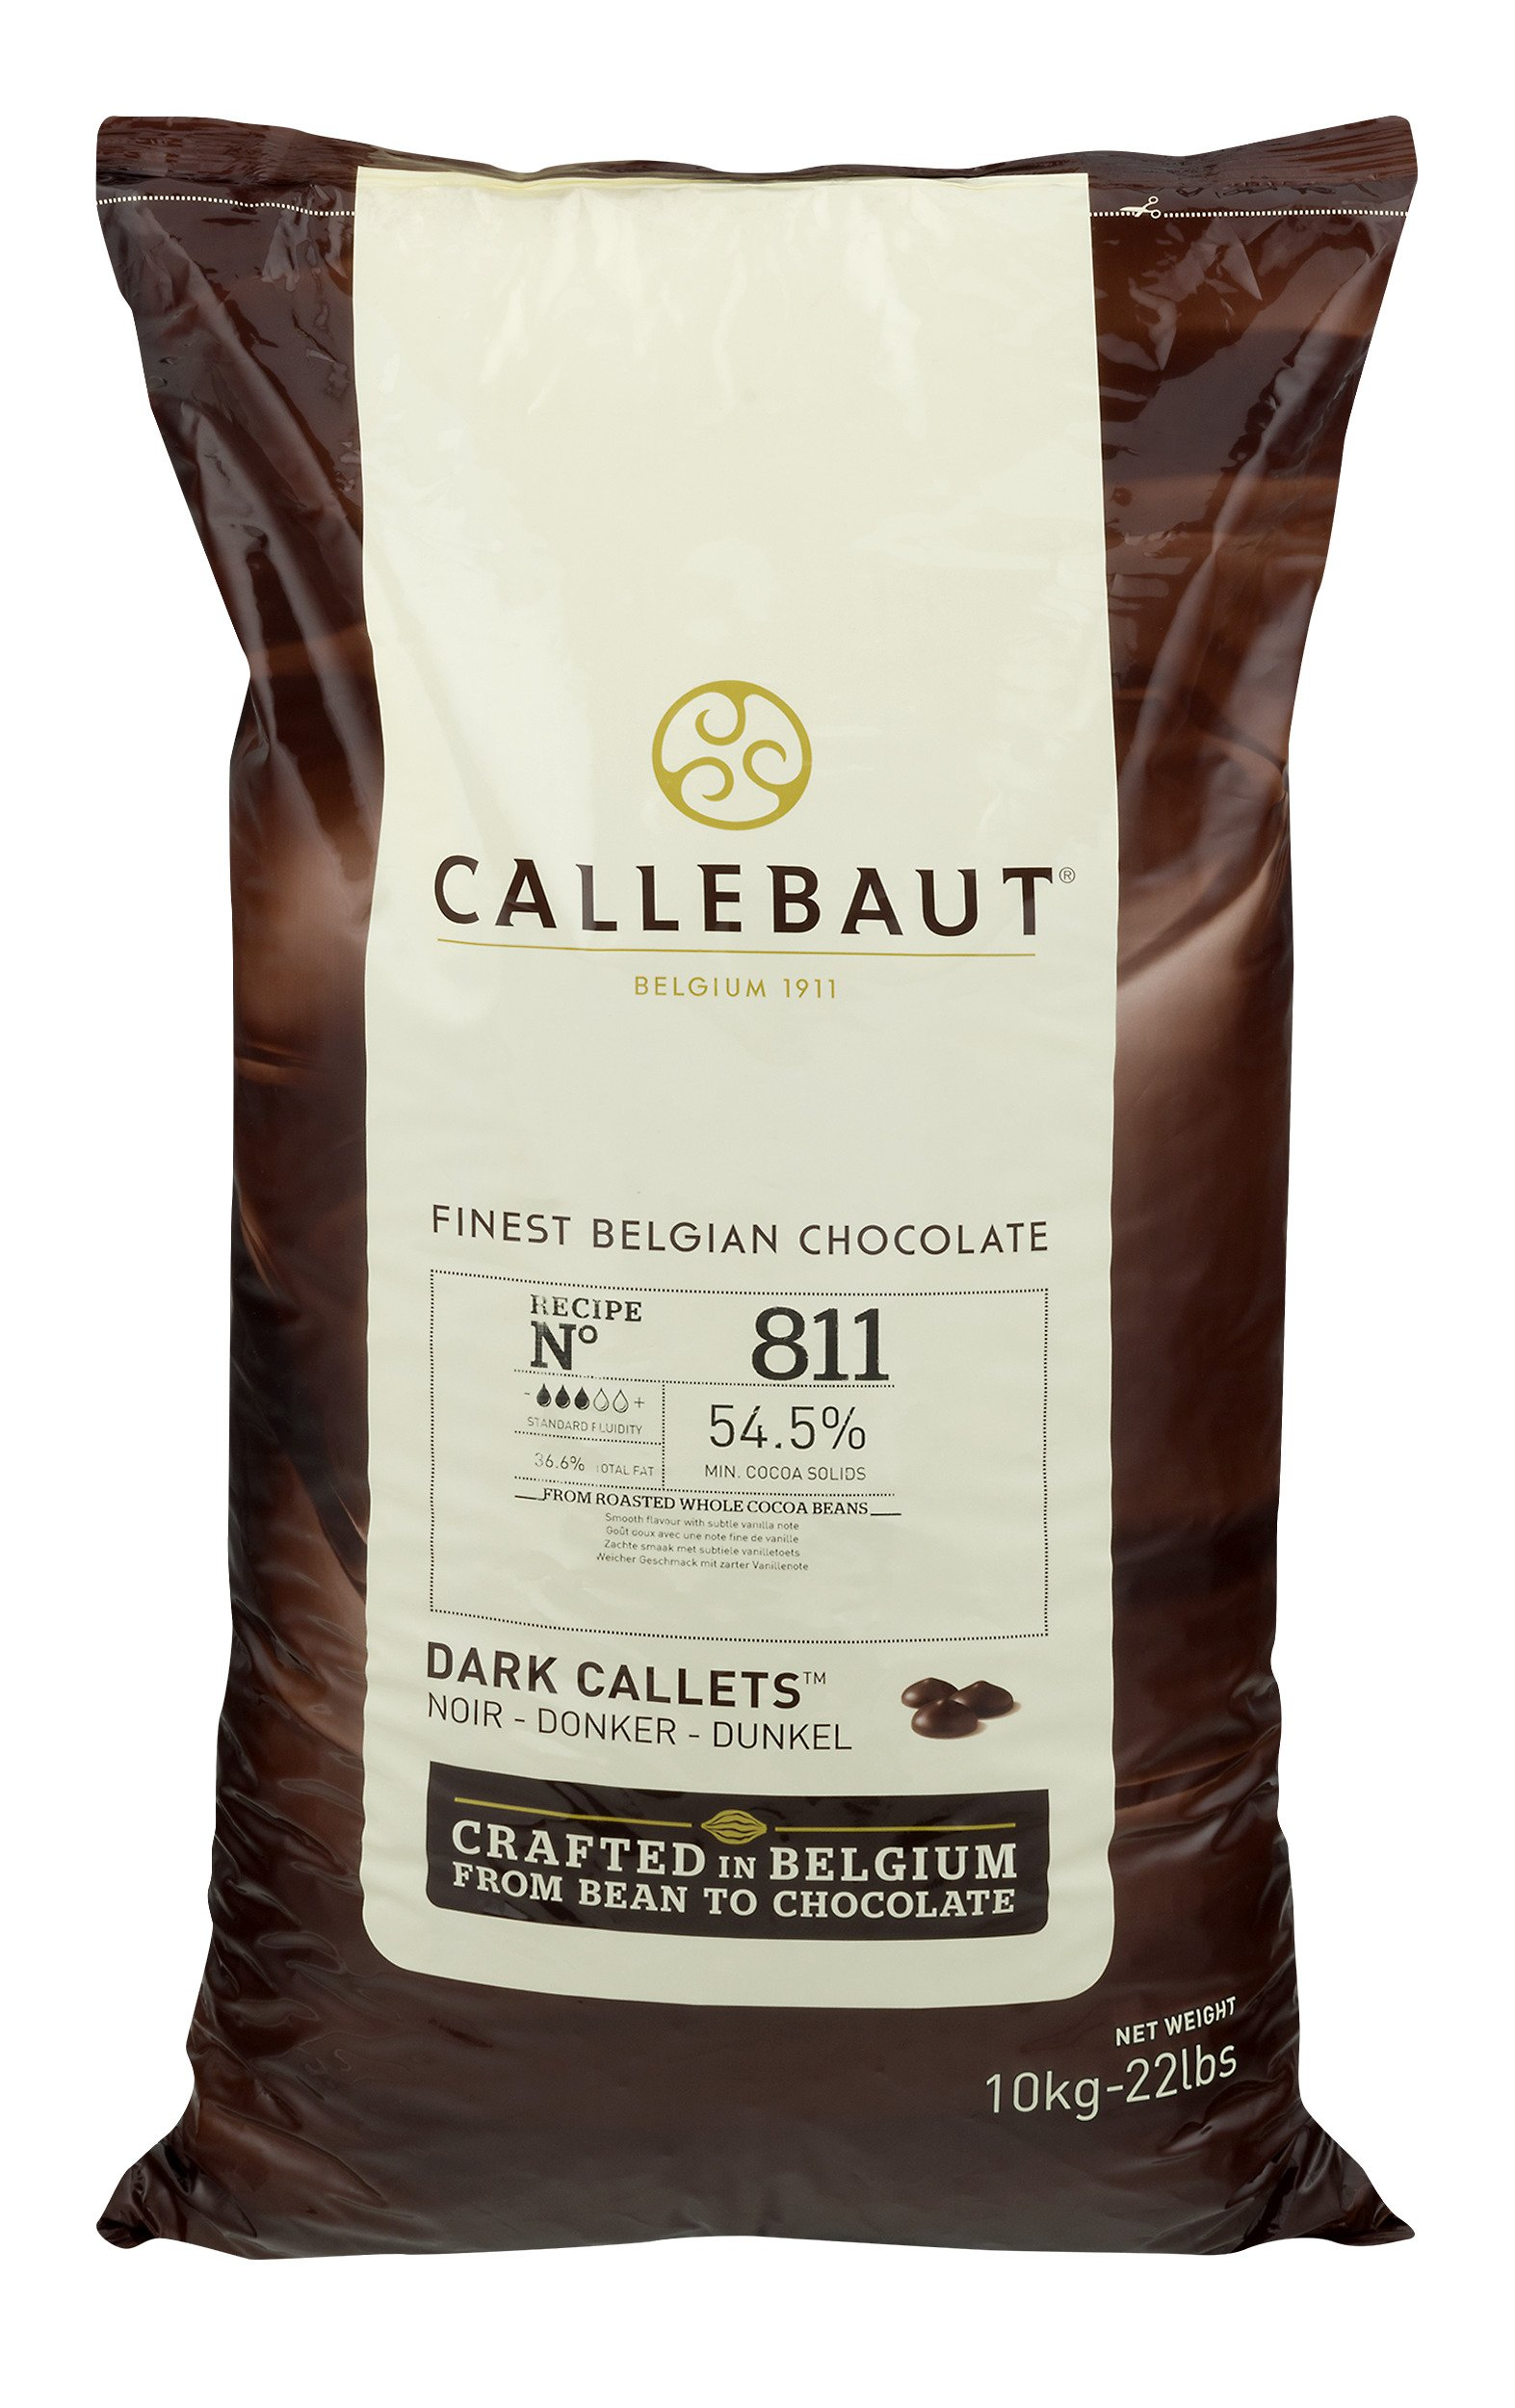 Callebaut Dark Couverture Semi-sweet Chocolate Callets - Belgian Baking Chocolate Callets - Recipe 811NV-595 - Many chef's no. 1-54.5% Cocoa Butter, 19.4% Fat Free Cocoa - 44 Lbs (20Kg) by Callebaut (Image #2)